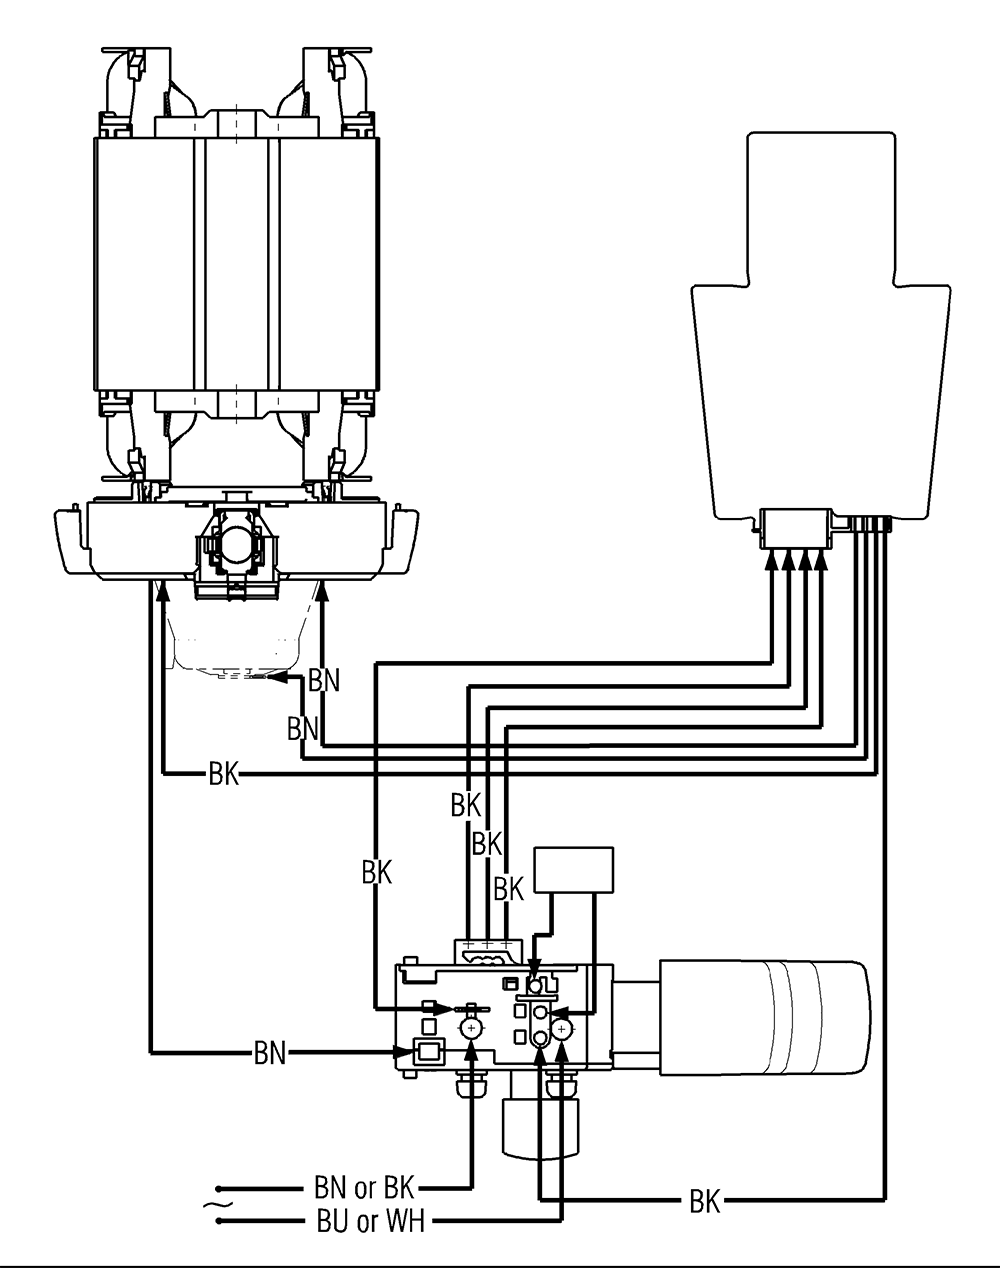 Electrical Wiring Diagram 800t Pb, Electrical, Free Engine